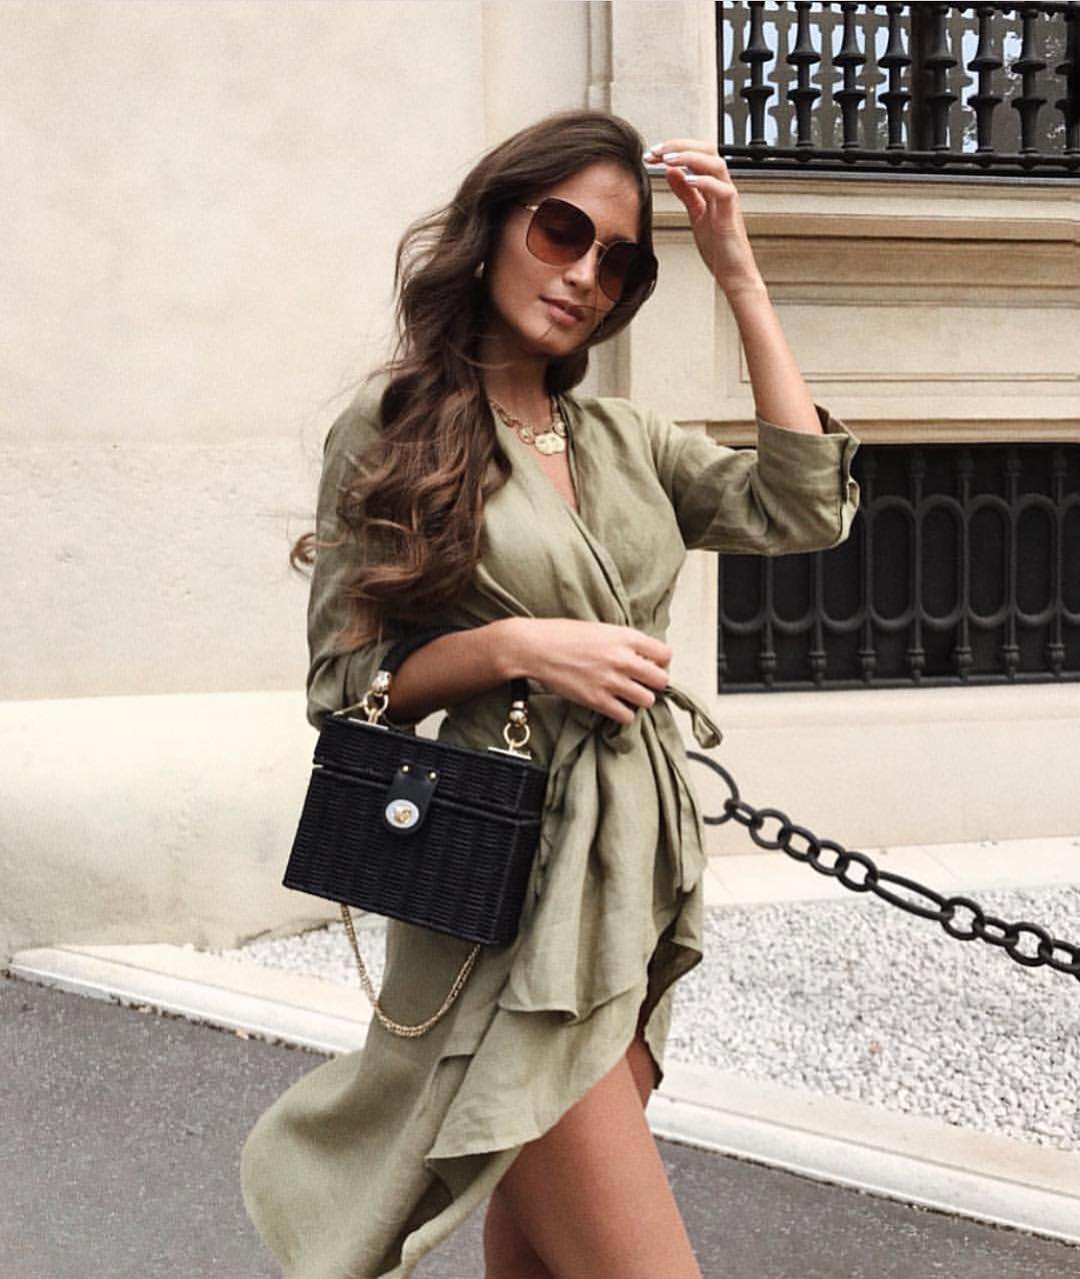 Khaki Olive Wrap Dress For Summer Casual Errands 2019